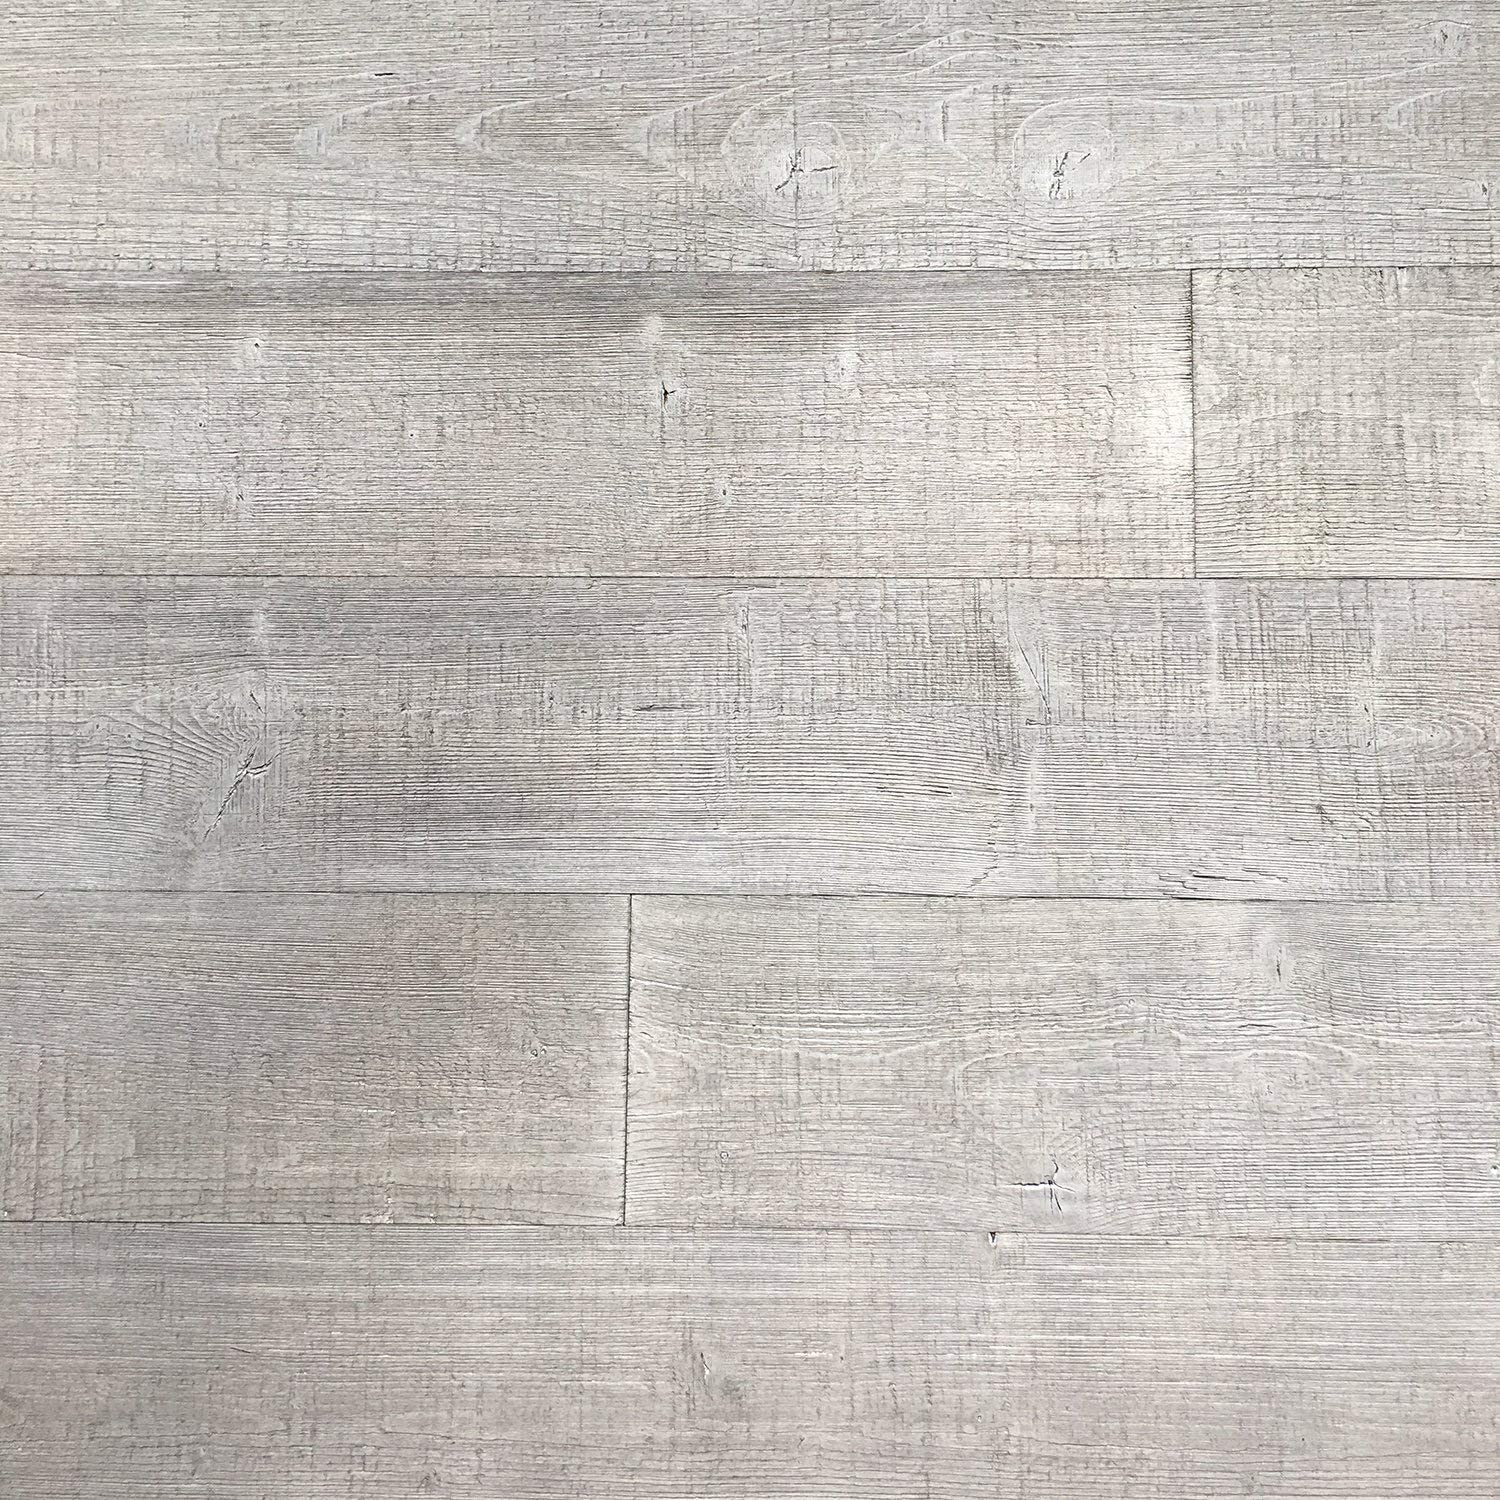 Art3d Peel and Stick Wood Planks for Walls - Light Gray, 16 Sq Ft